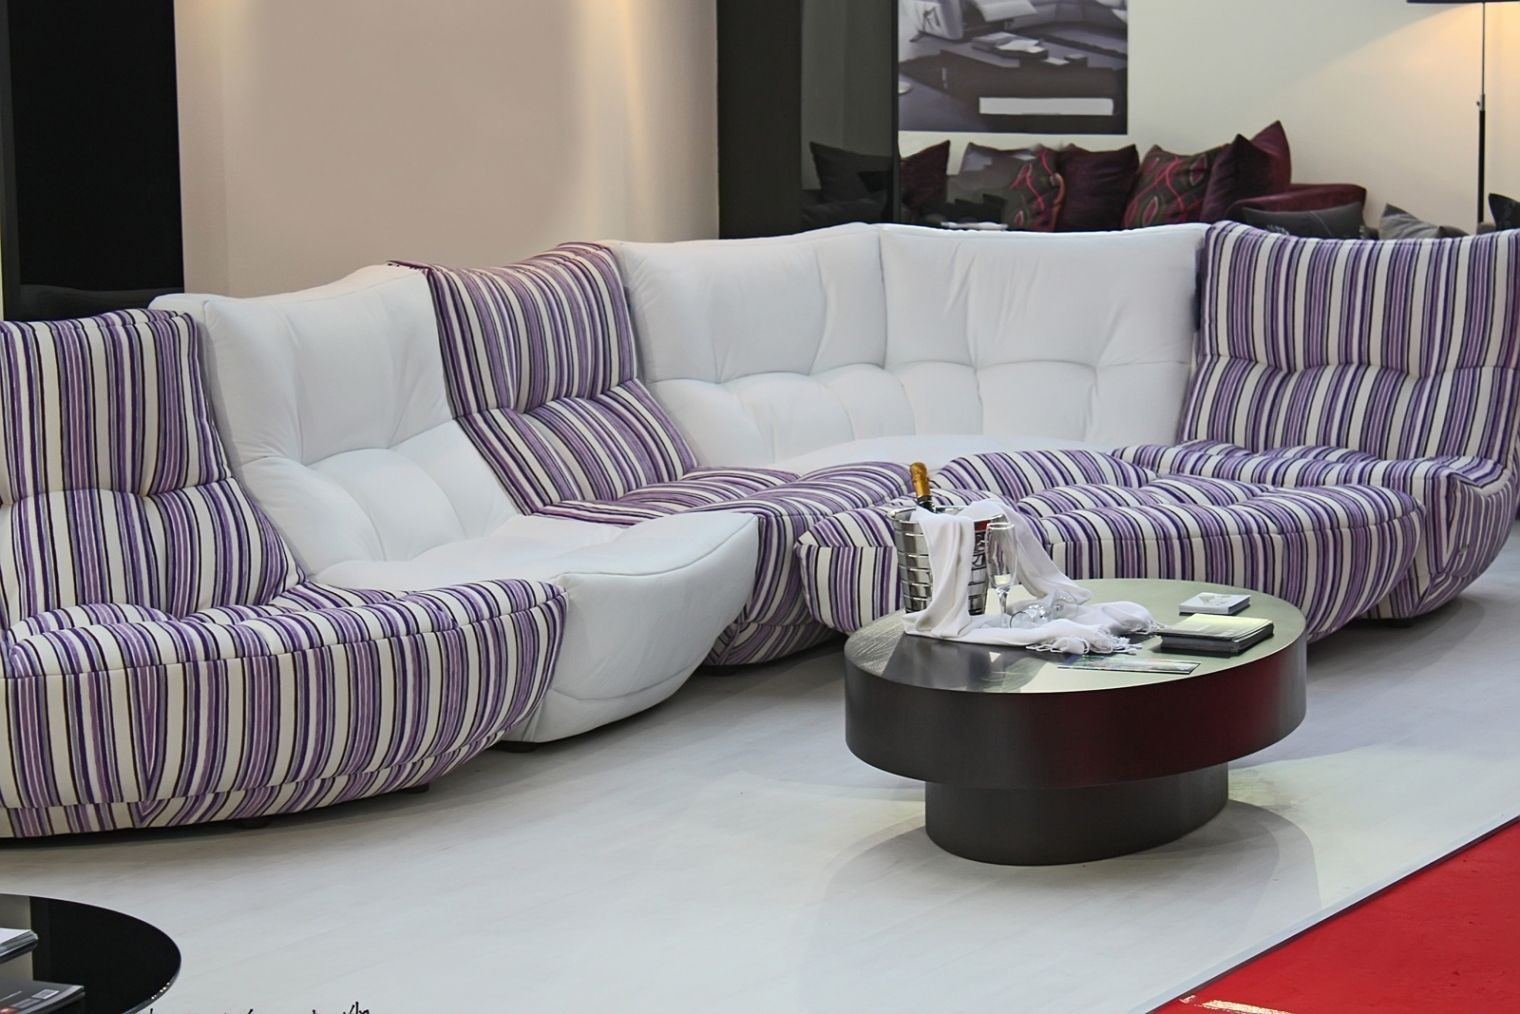 inspirational most comfortable sofas inspiration-Stunning Most Comfortable sofas Photo